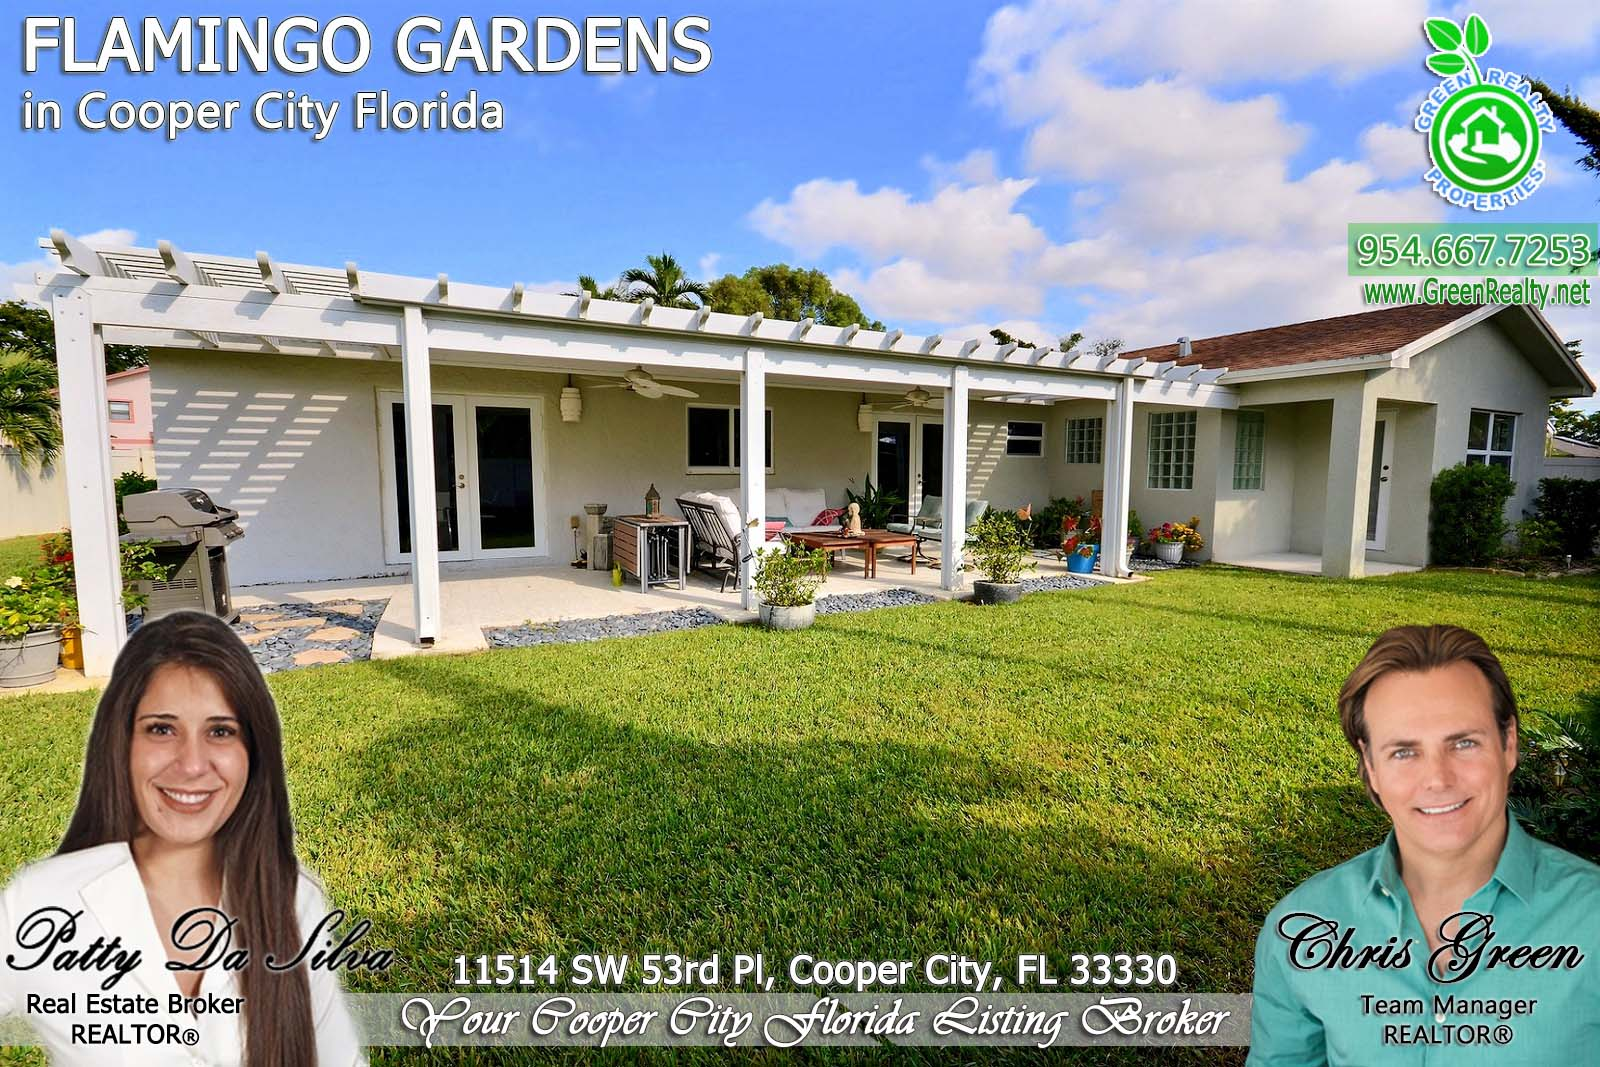 14 Flamingo Gardens Cooper City Homes For Sale (11)